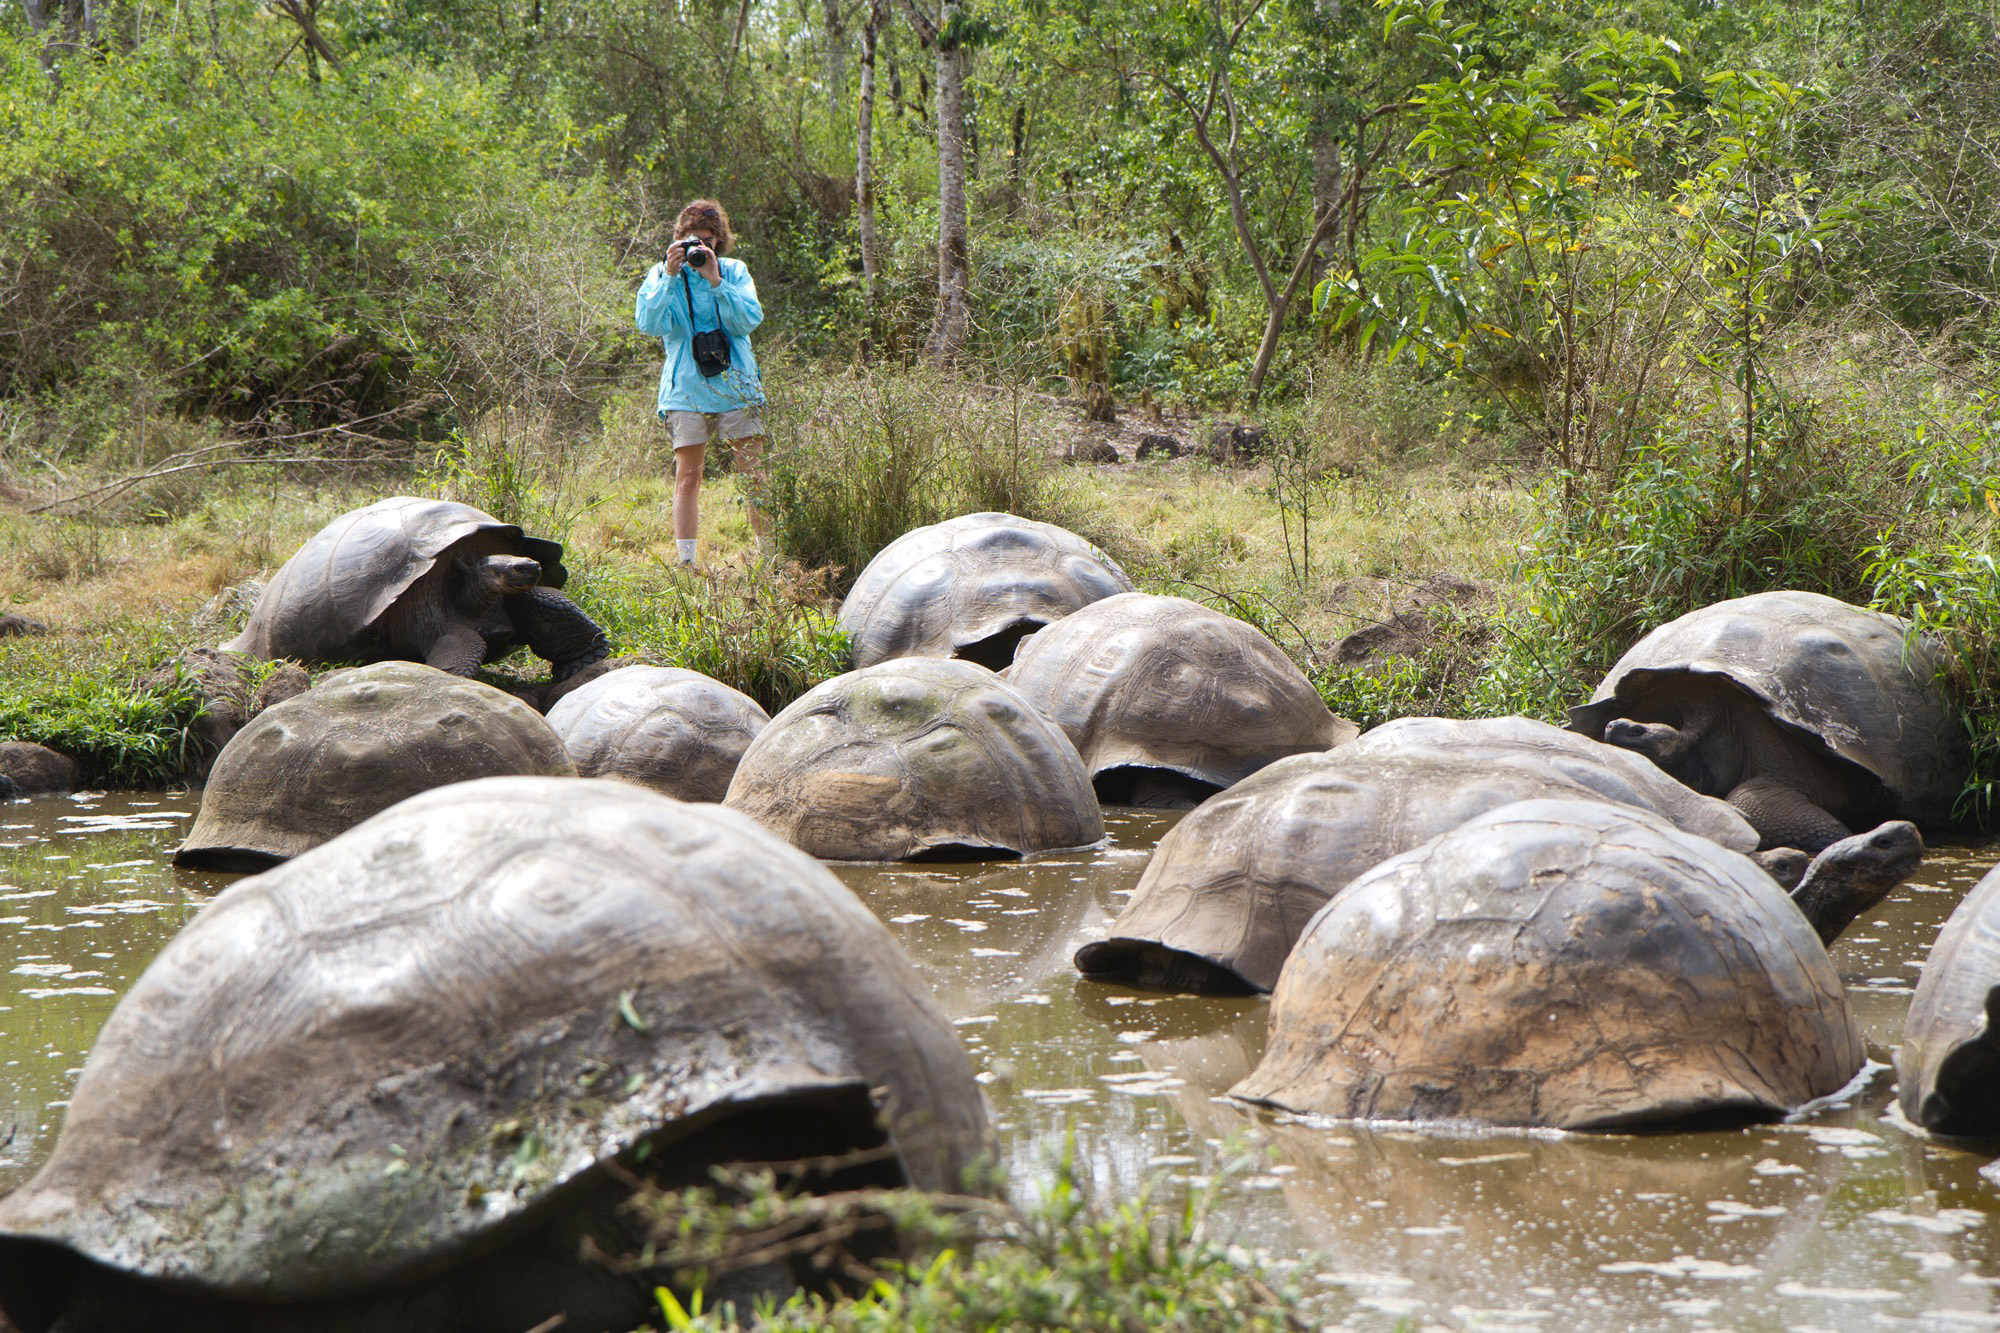 Expedition To The Galapagos Islands Florida Museum